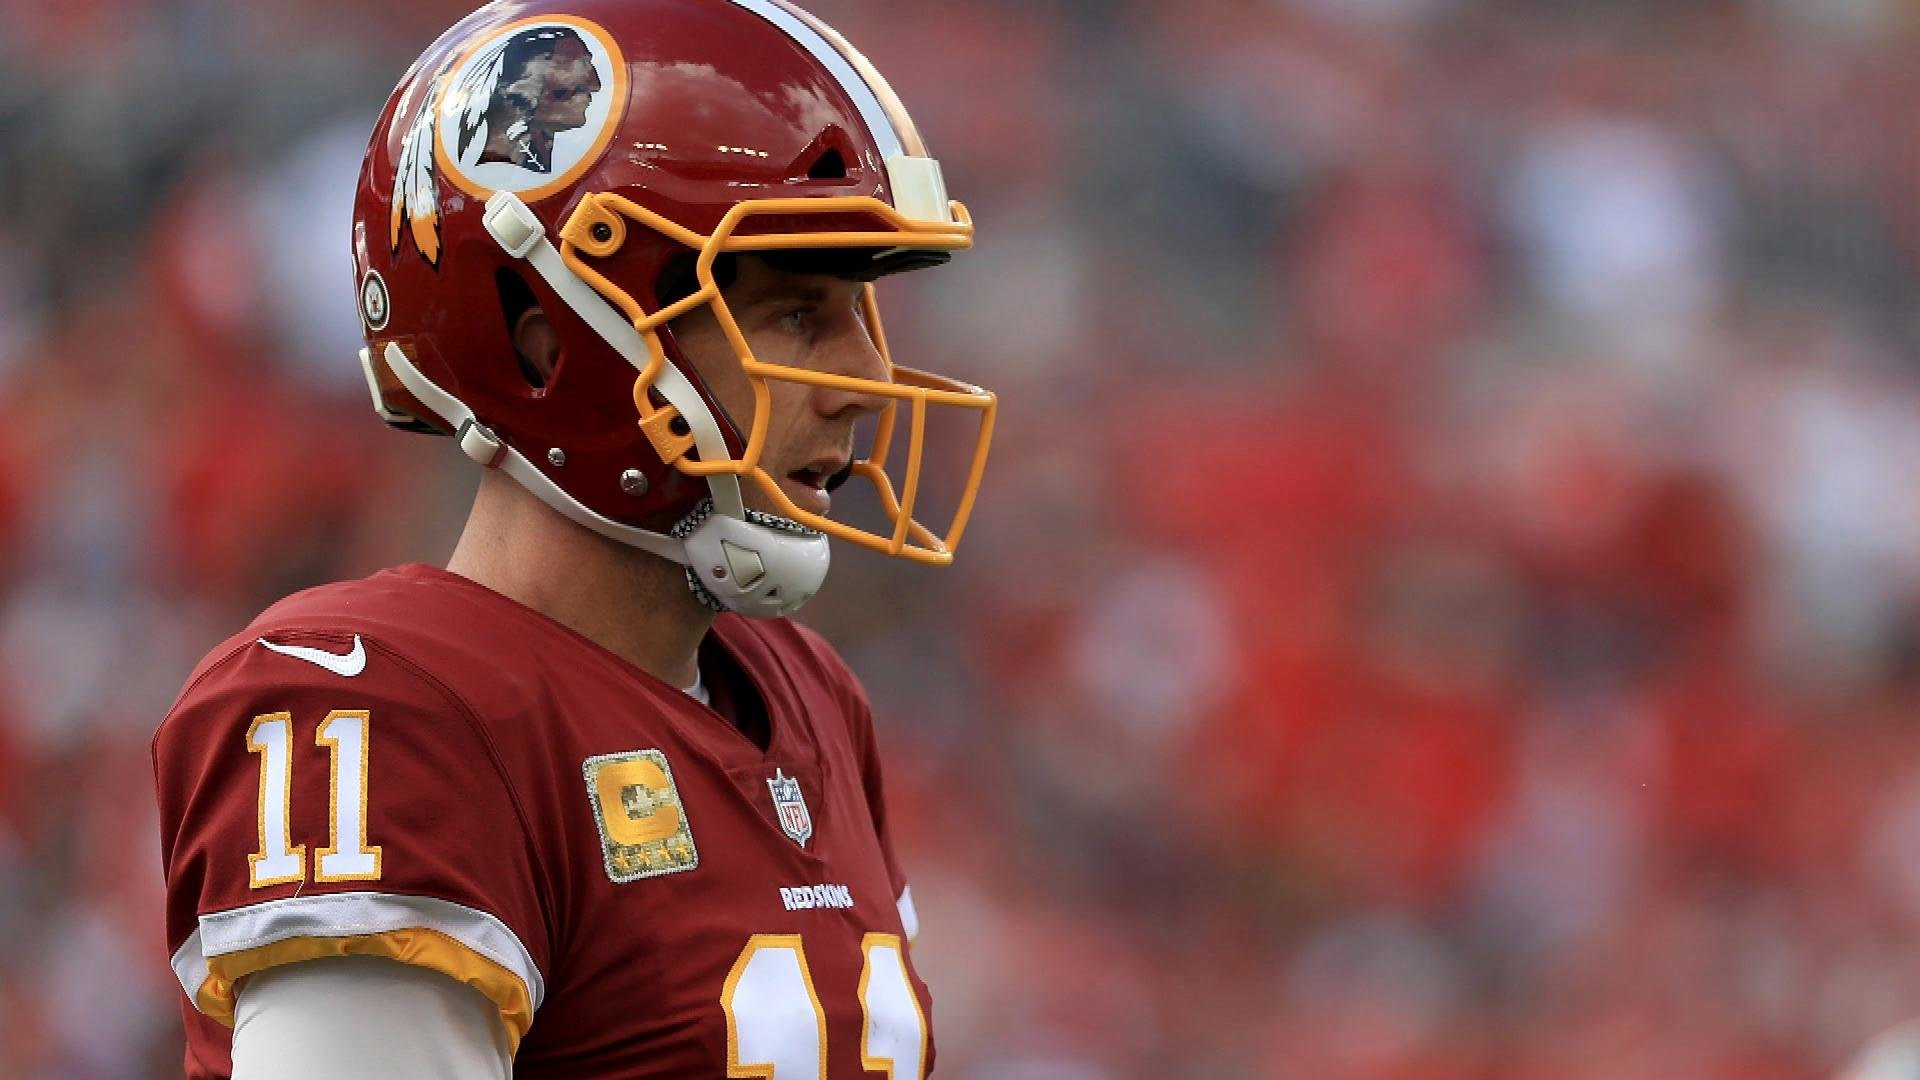 bc3d09e4e Washington Redskins say QB Alex Smith has  serious injury